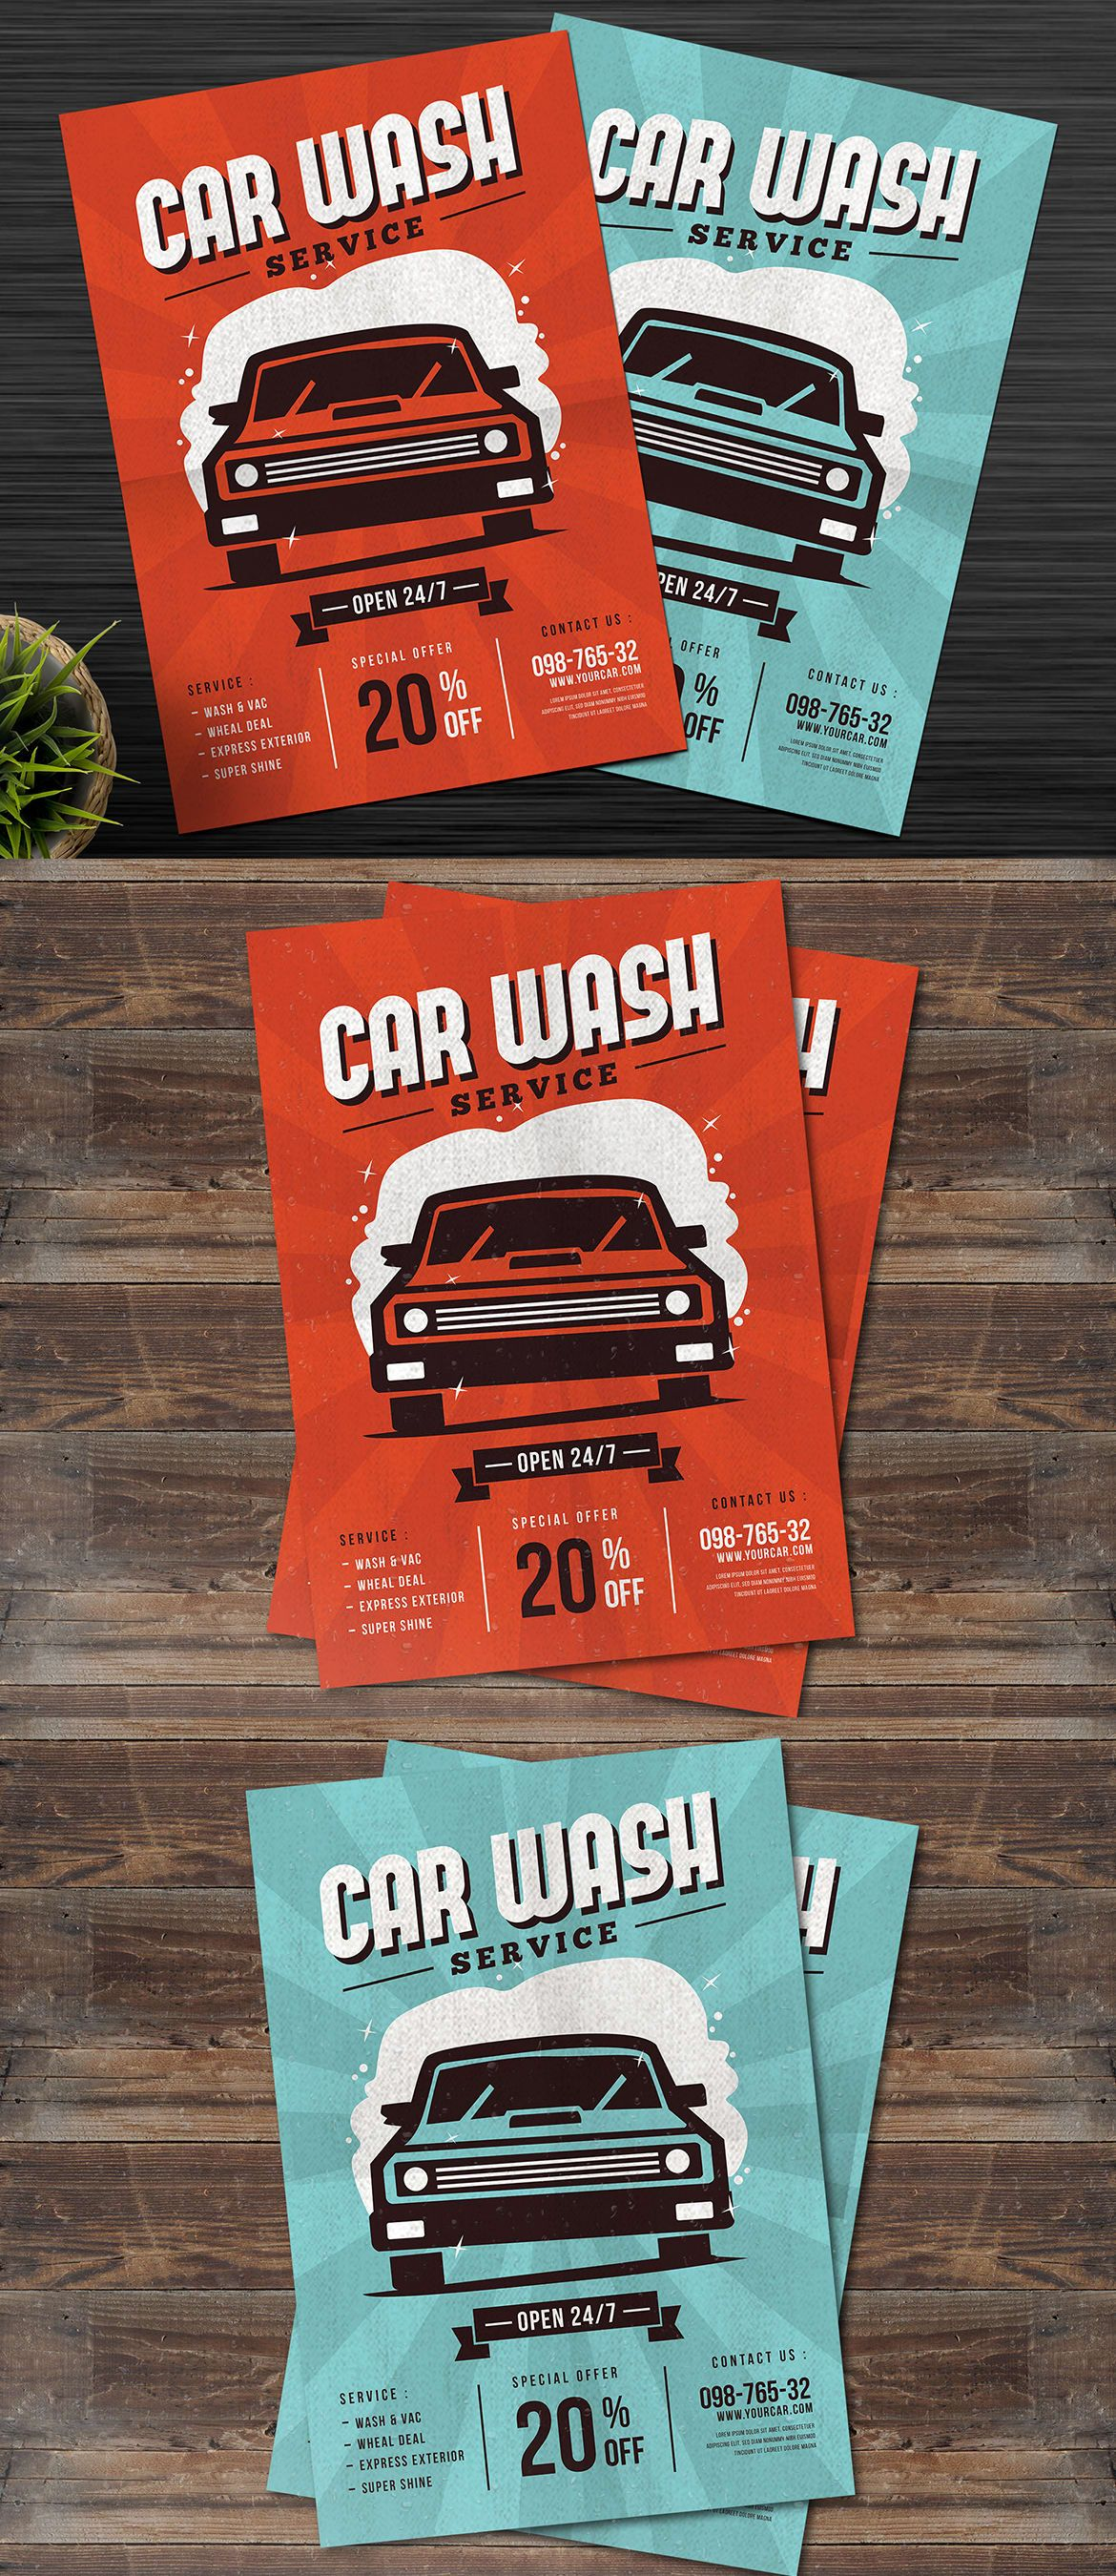 Car Wash Service Flyer Template AI, PSD | Flyer Templates ...